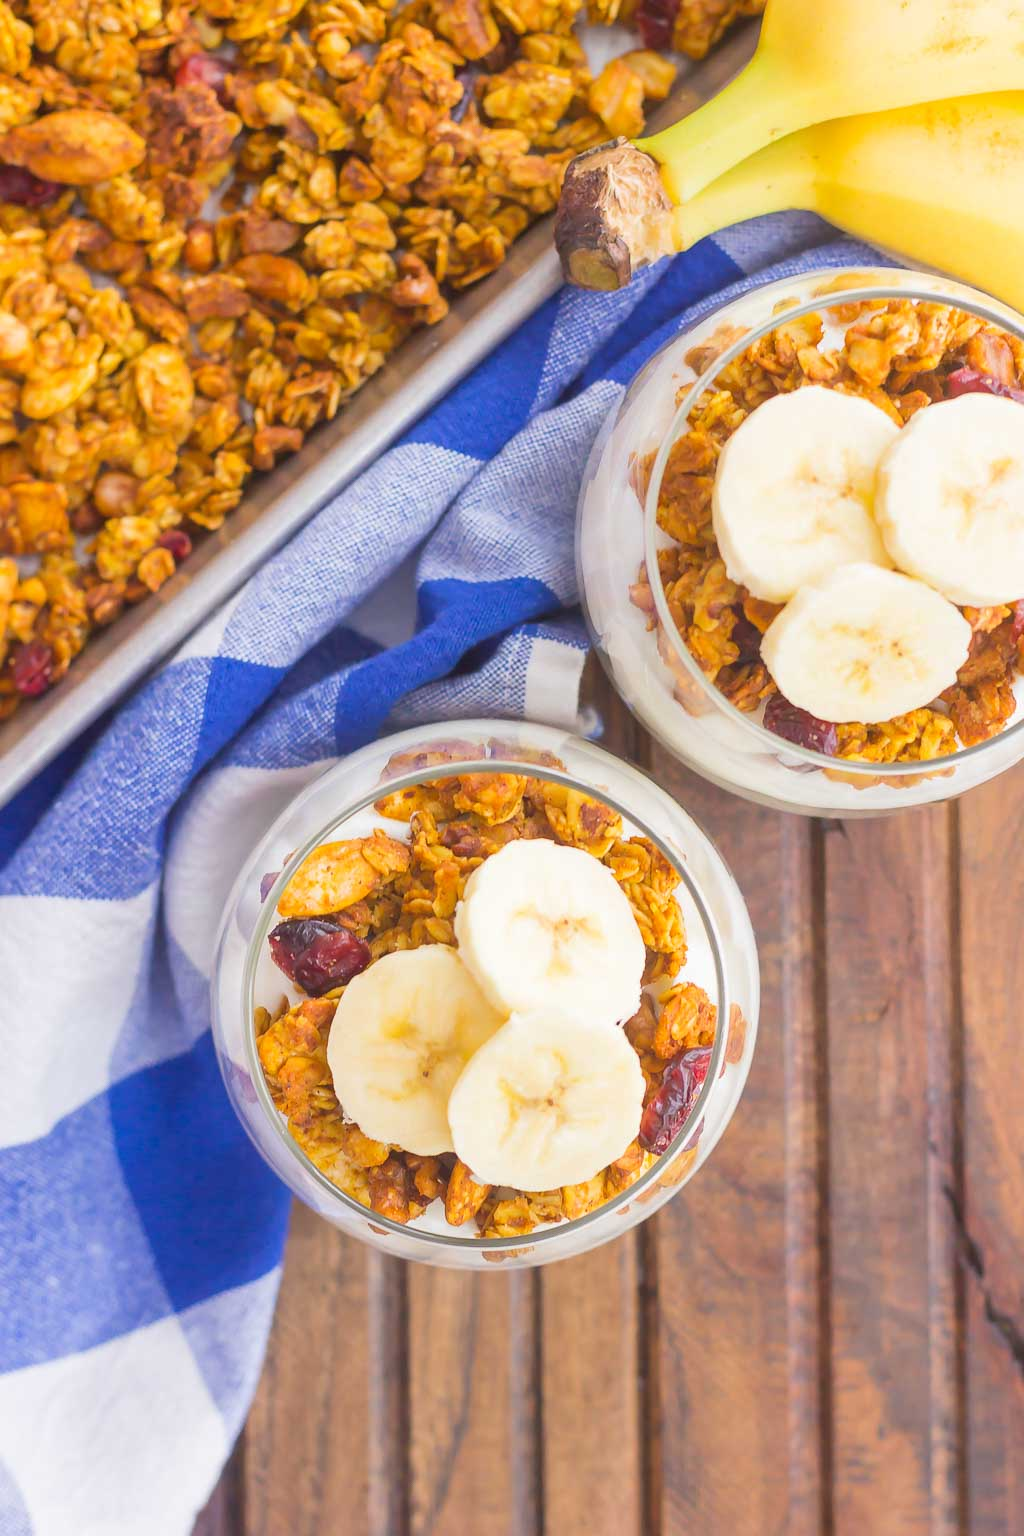 Pumpkin Banana Yogurt Parfait makes a deliciously simple breakfast or snack. Packedwith vanilla yogurt, pumpkin spice granola and fresh banana slices, this healthier dish is easy to make and perfect for fall!